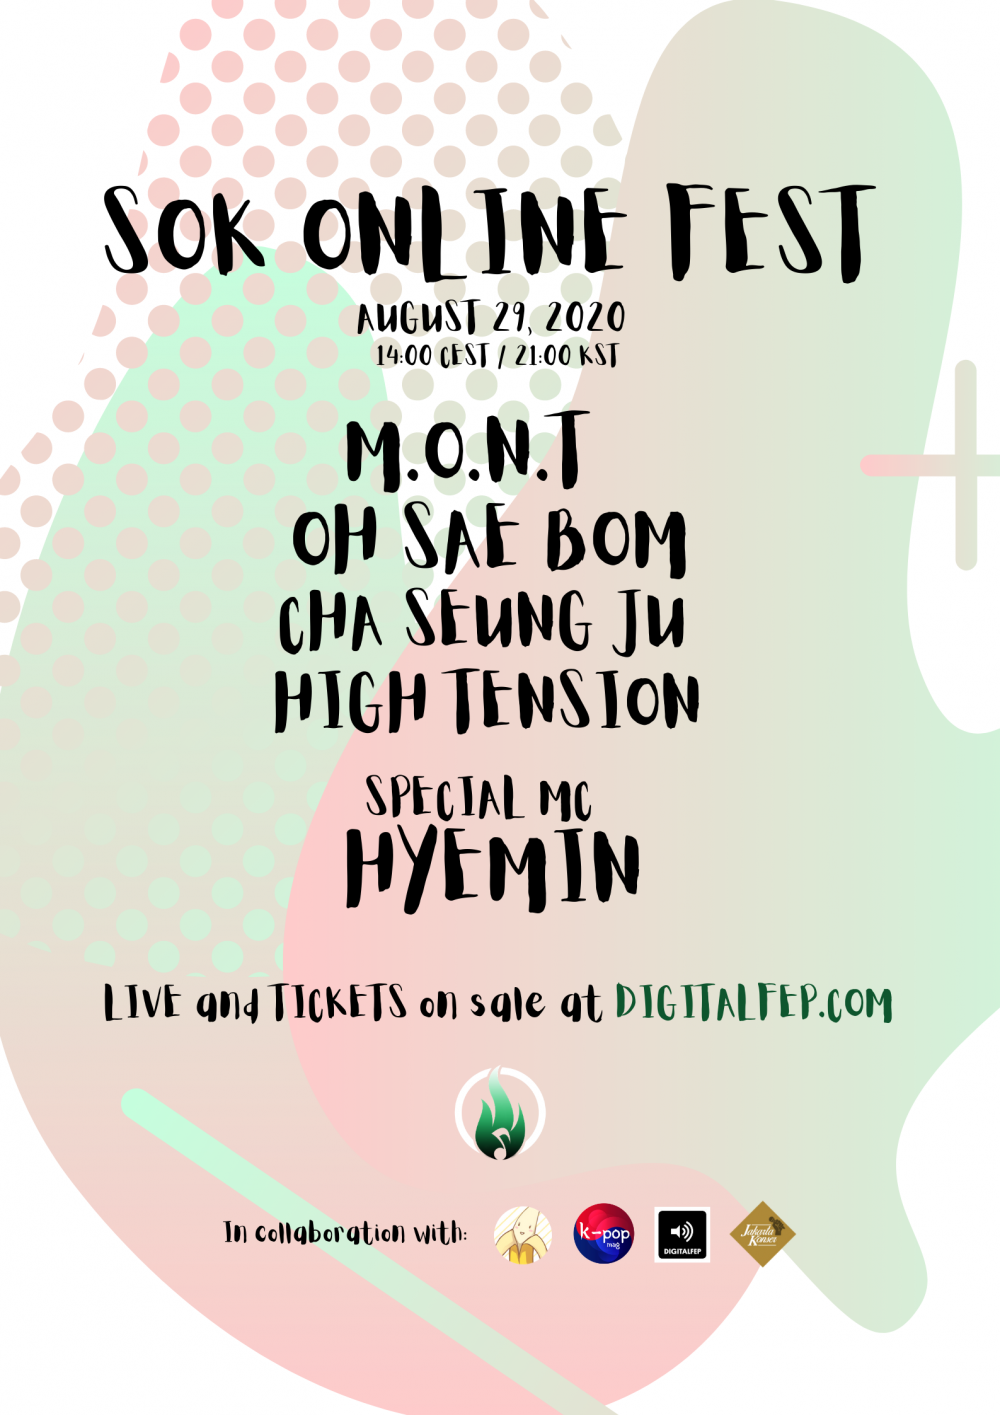 sok online fest mont hyemin oh sae bom high tension cha seung ju